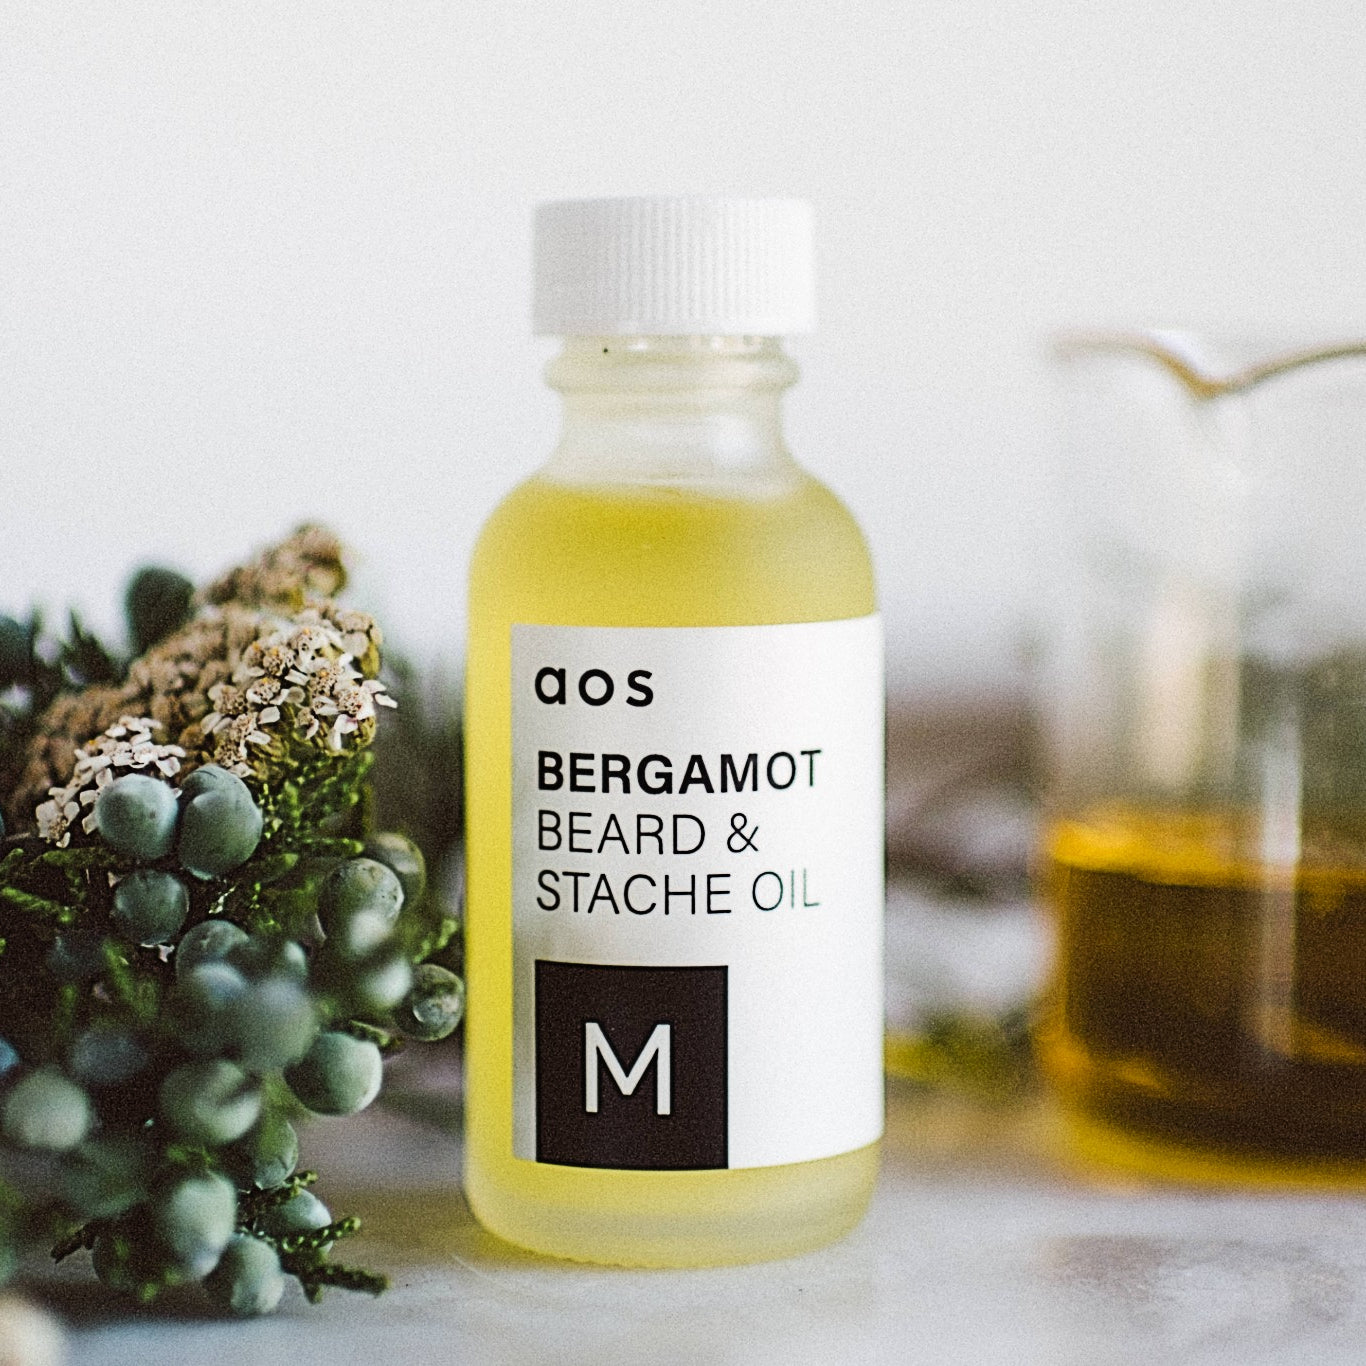 Bergamot Beard & Stache Oil